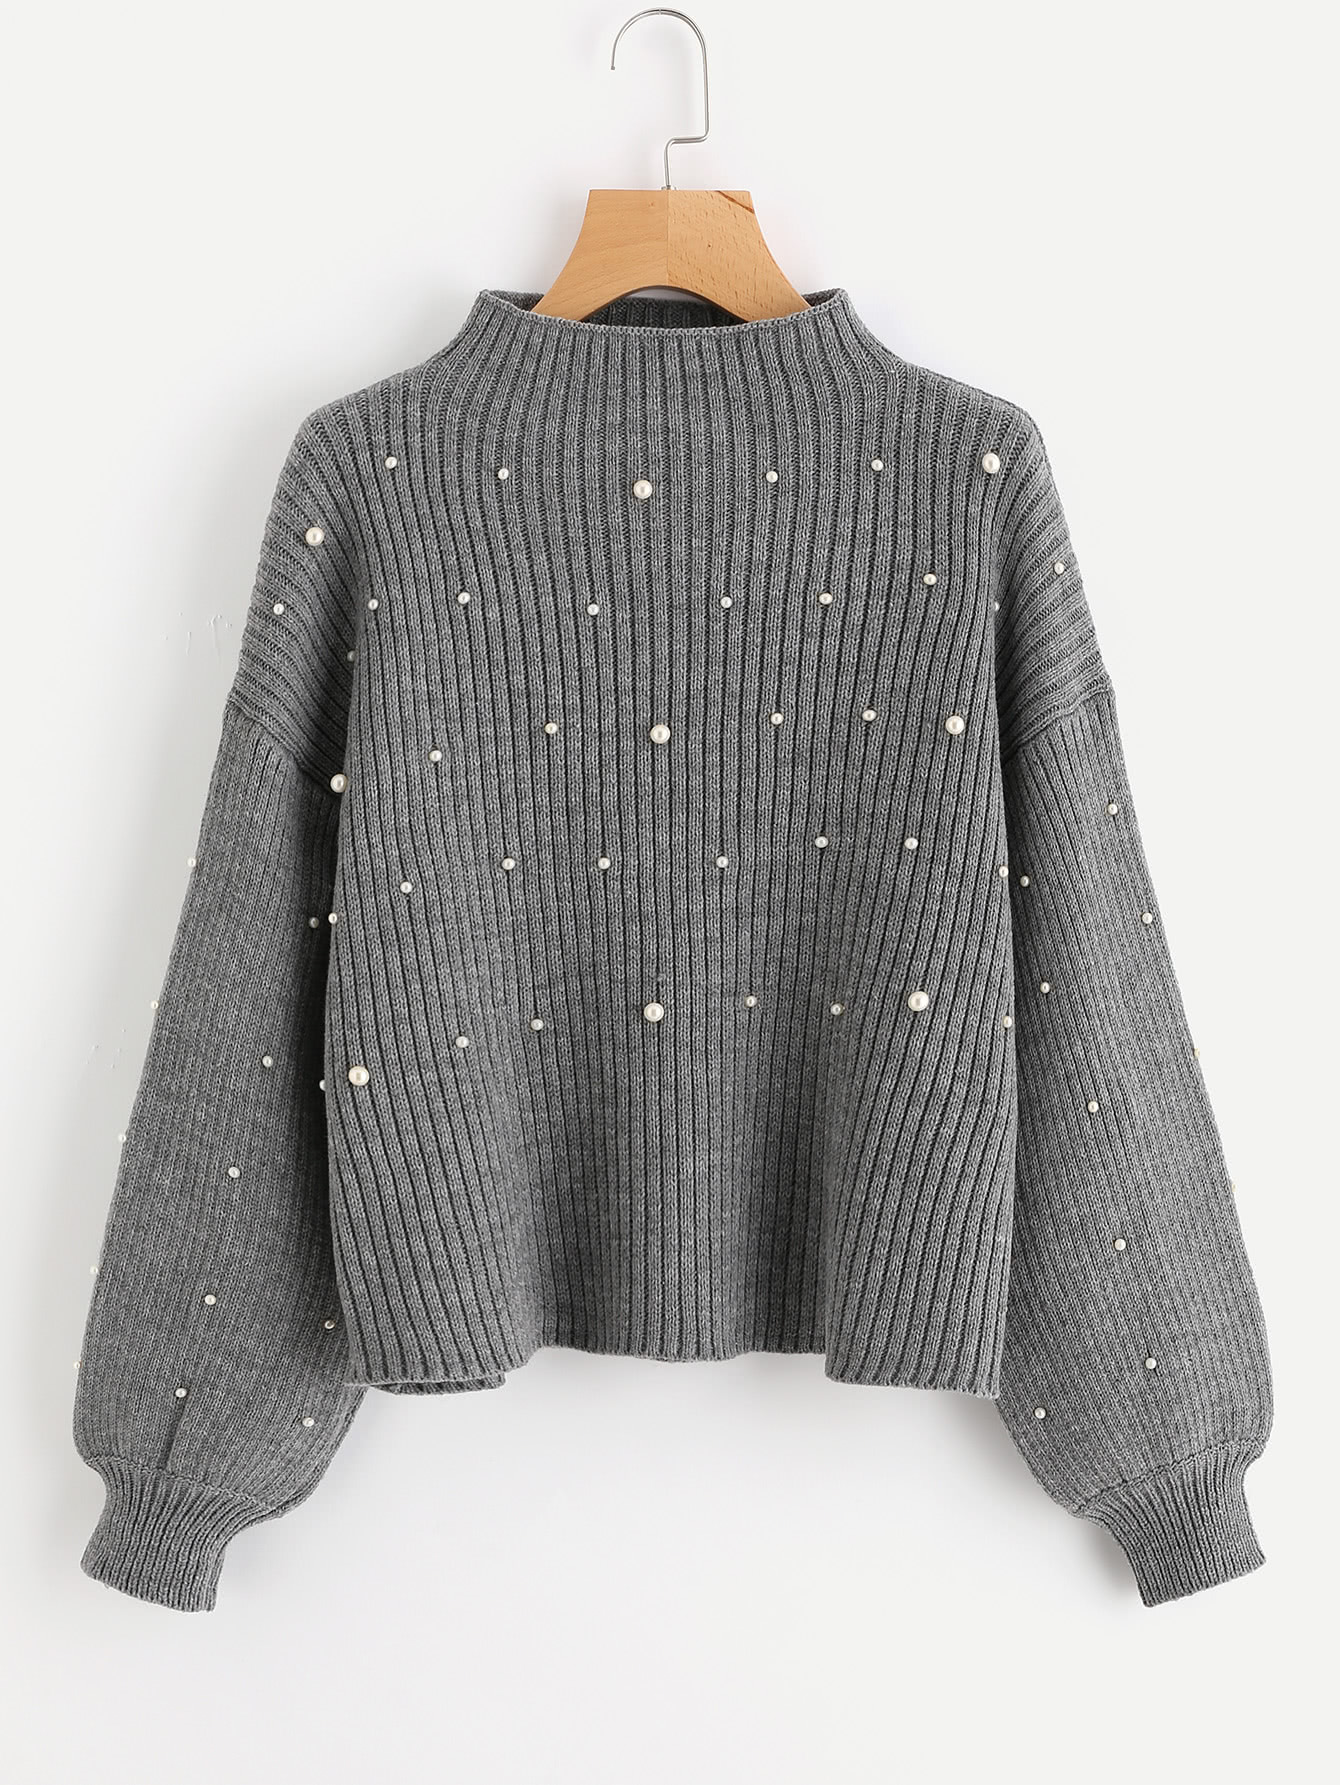 Pearl Beaded Rib Knit Jumper sennheiser ie 80 вставные наушники